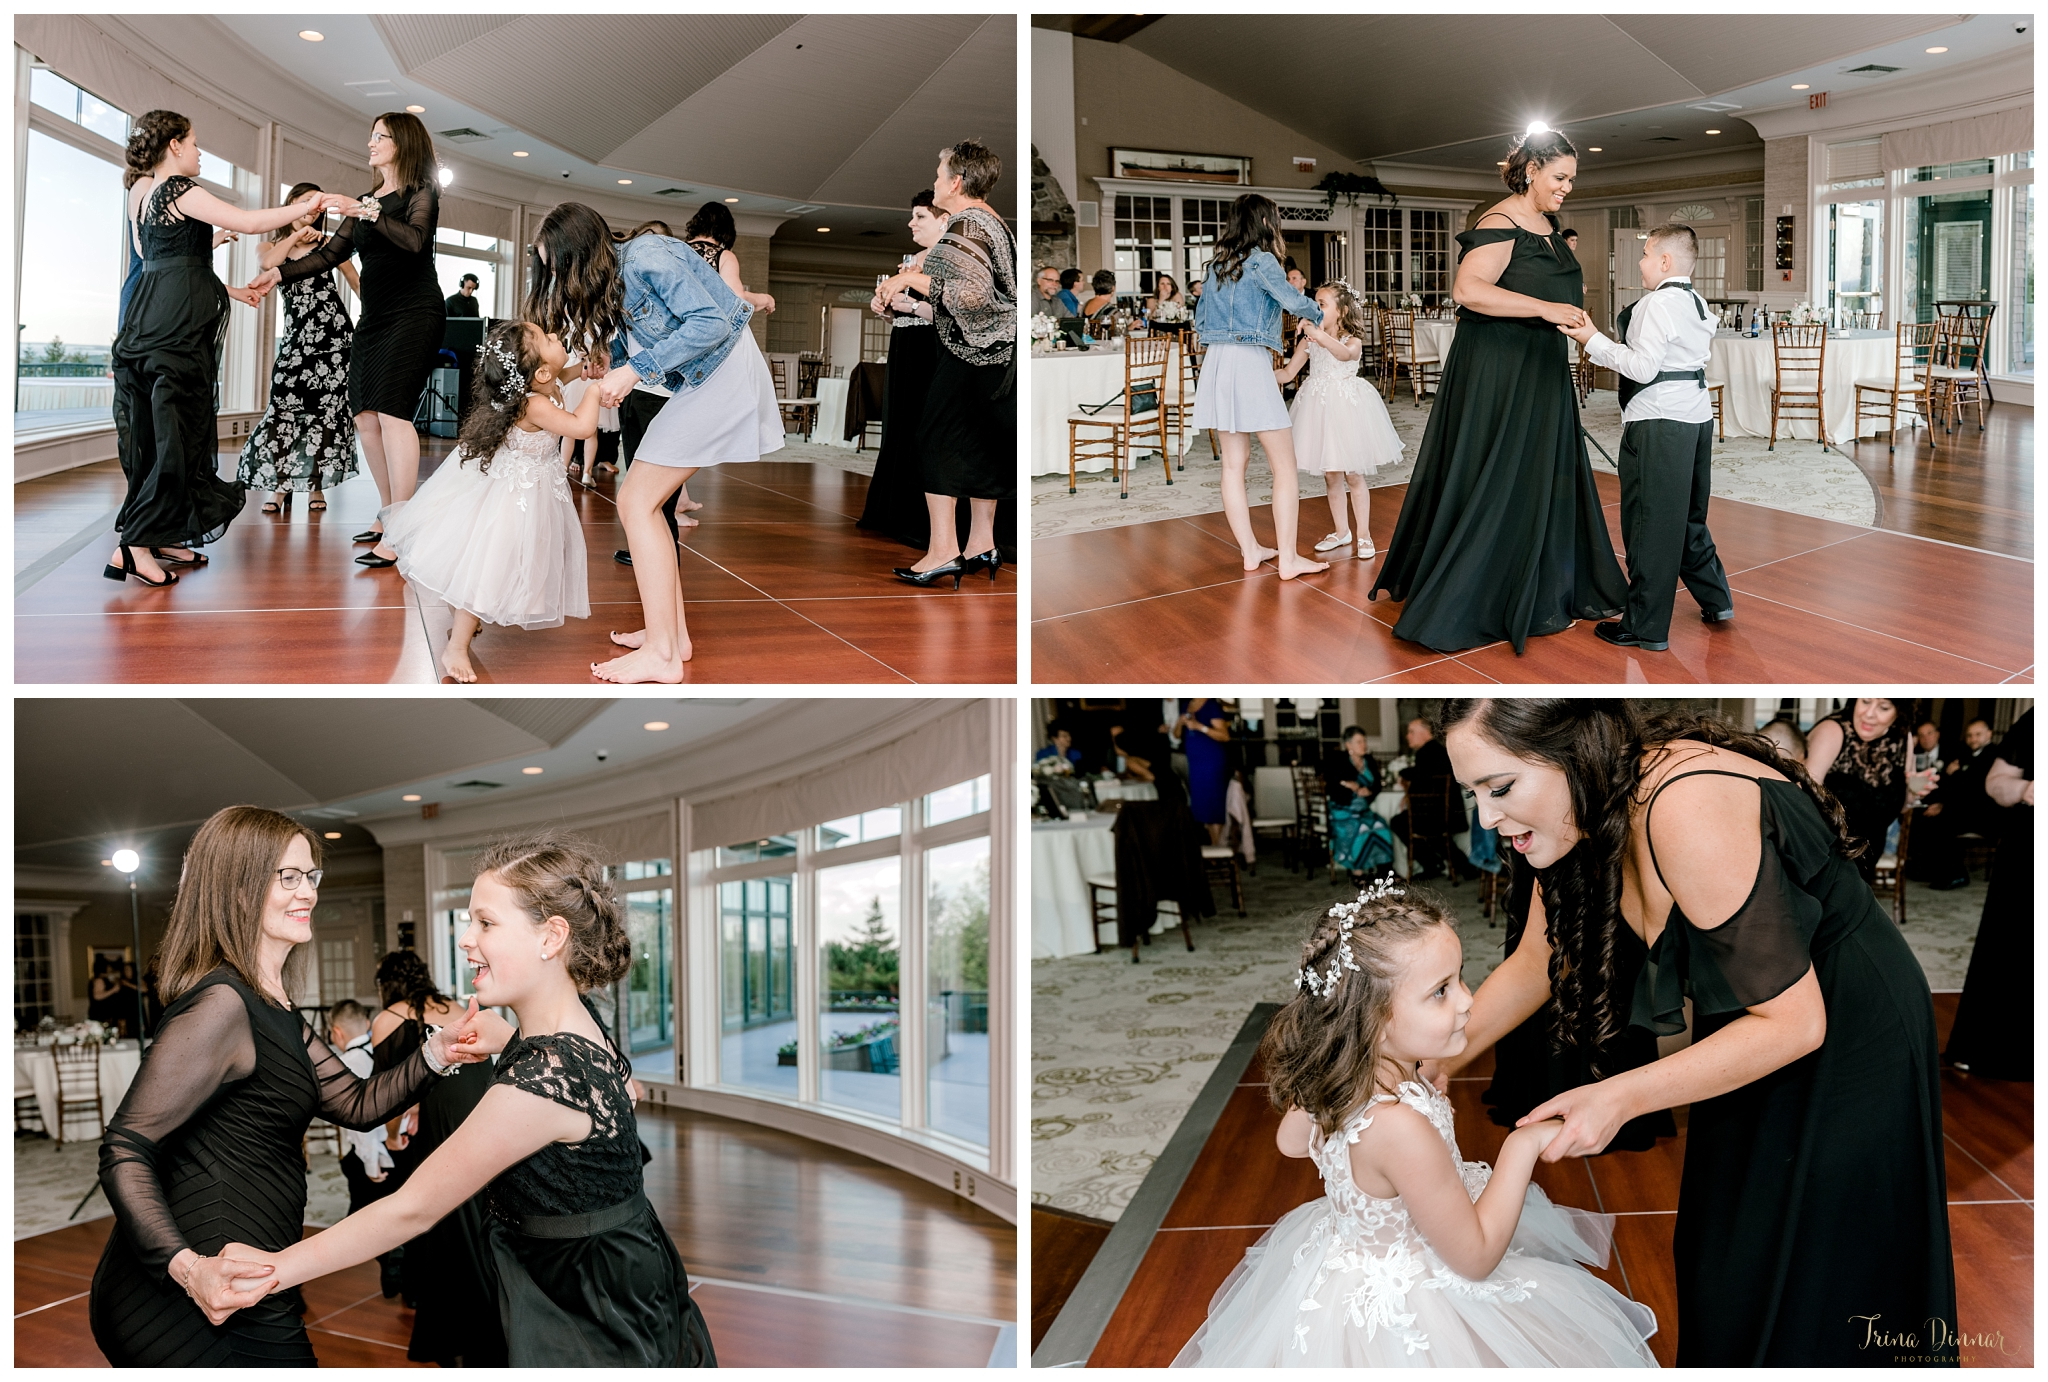 Dancing at The Summit at Point Lookout during a wedding reception.